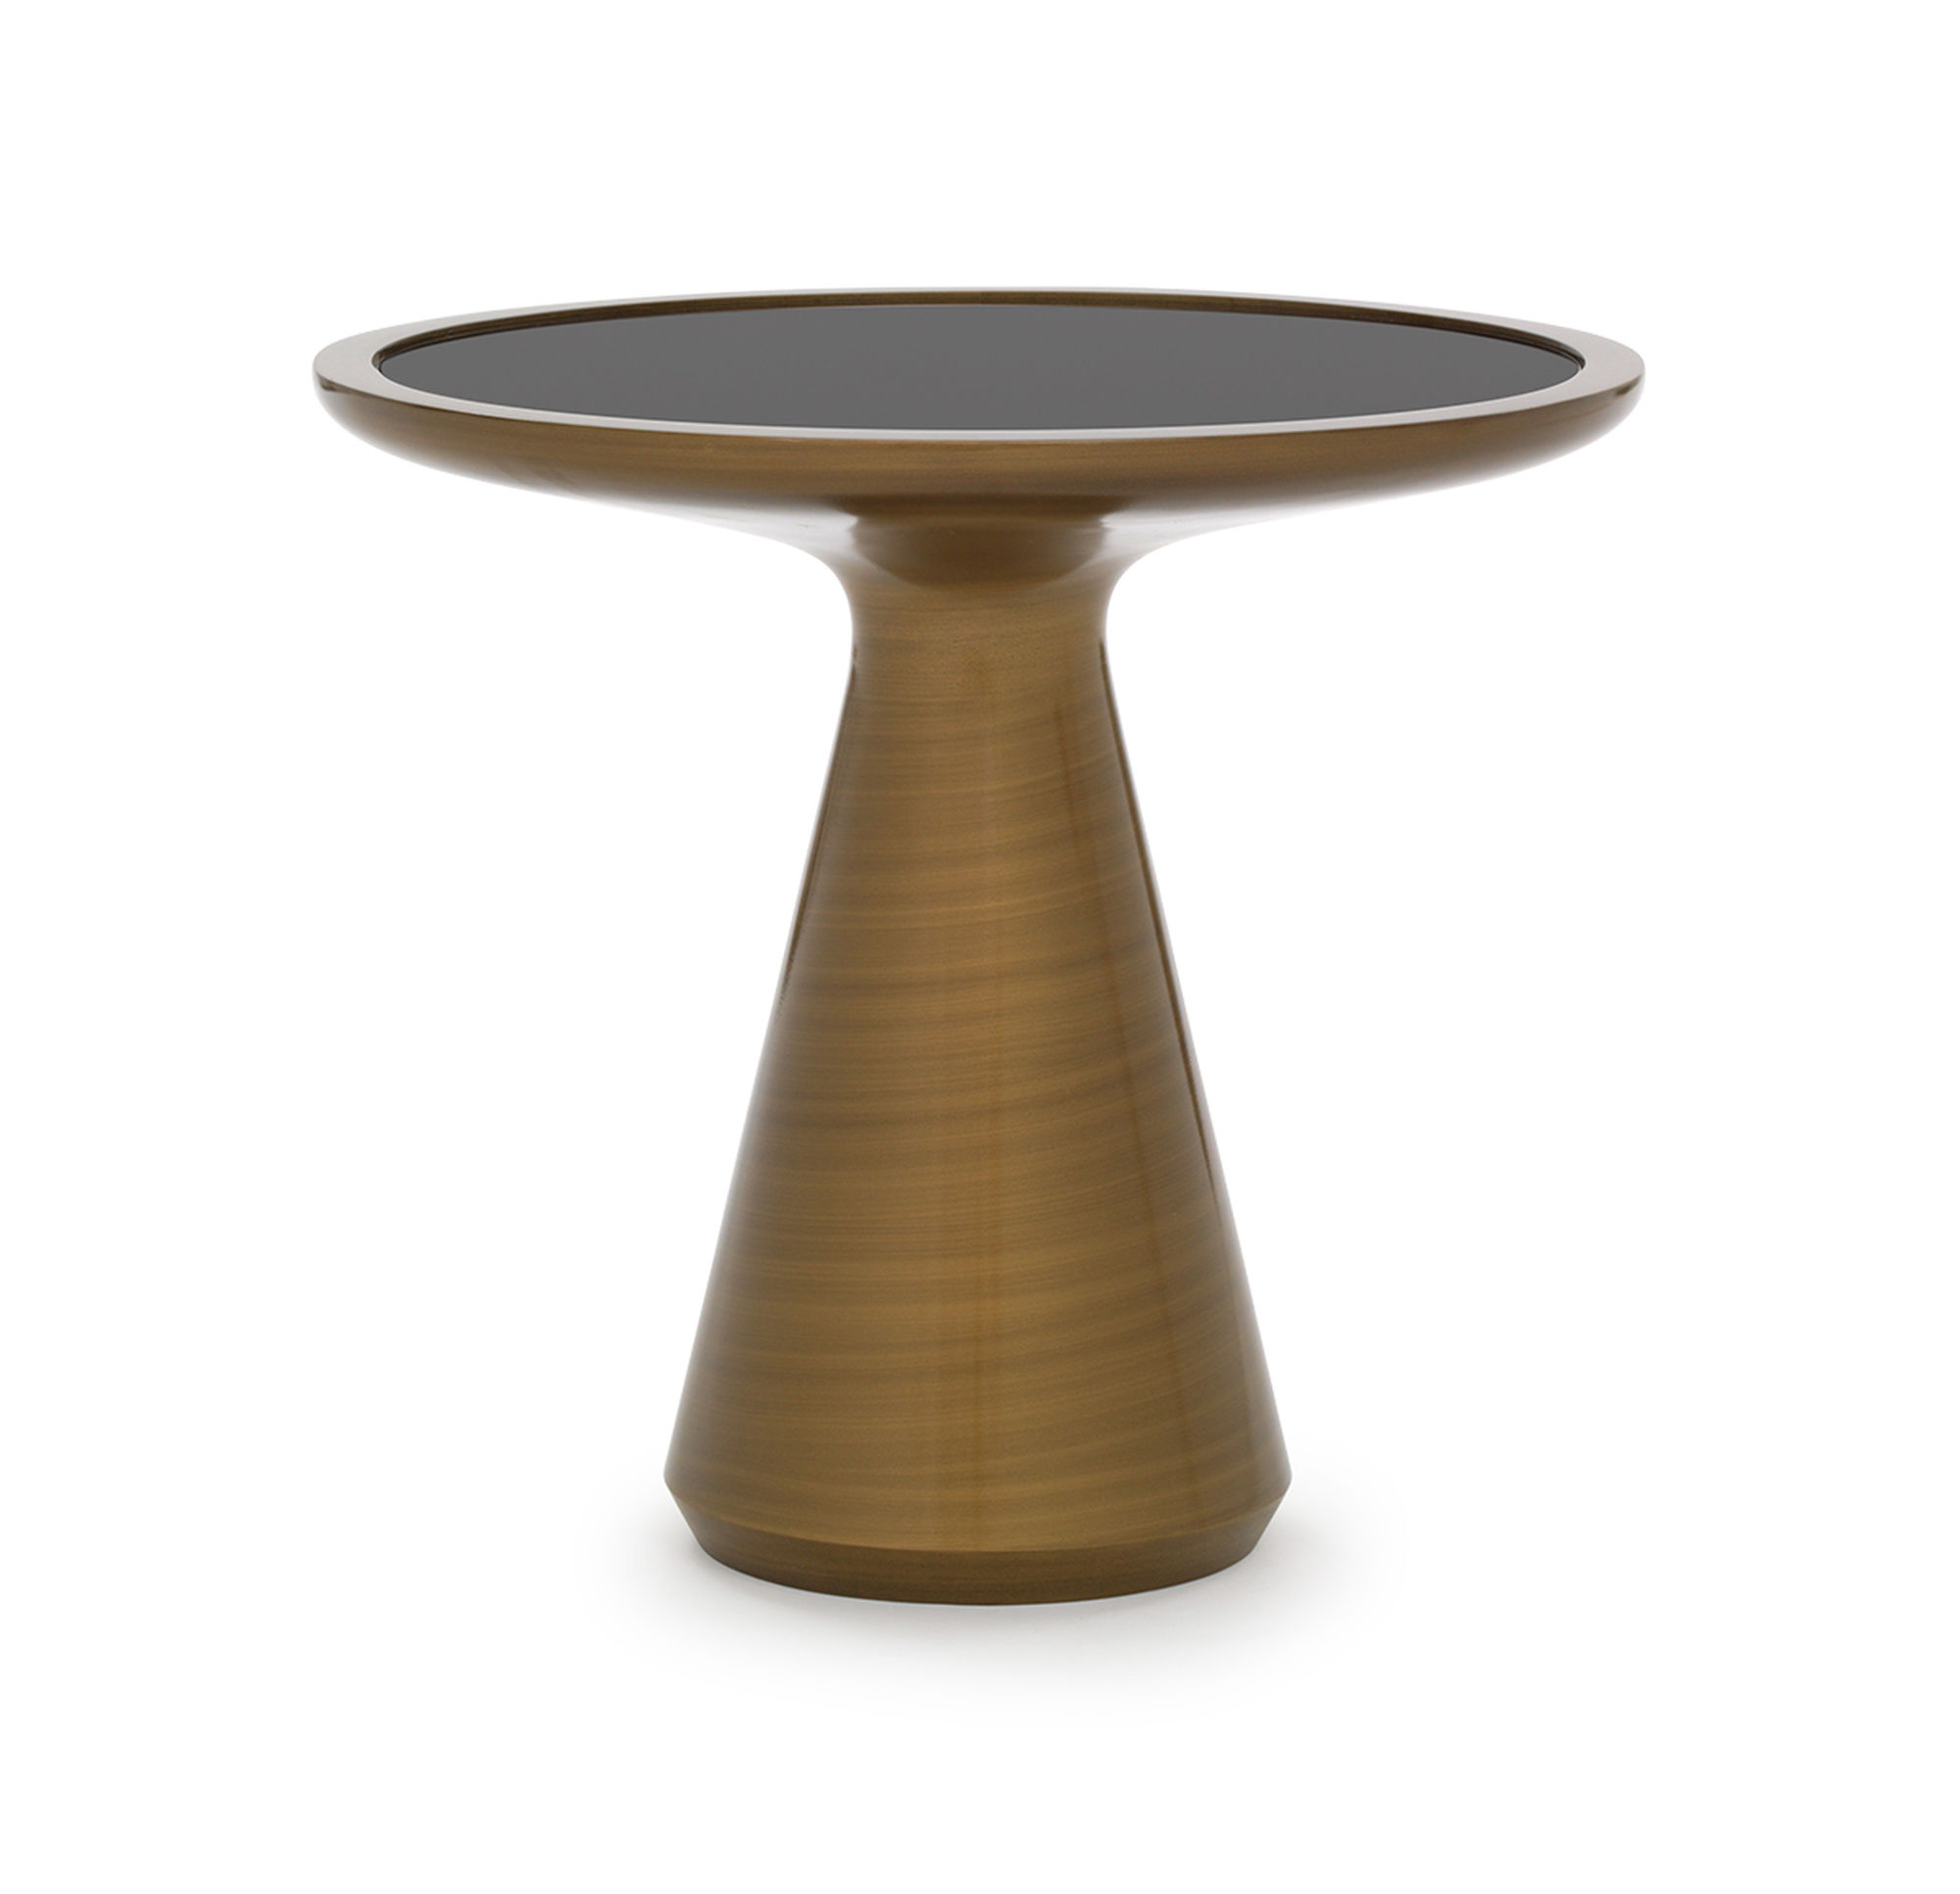 addie side table bronze stb brz hero accent small black desk pier one lamps clearance corner dining room furniture maritime light fixtures wood coffee set modern legs rustic pine